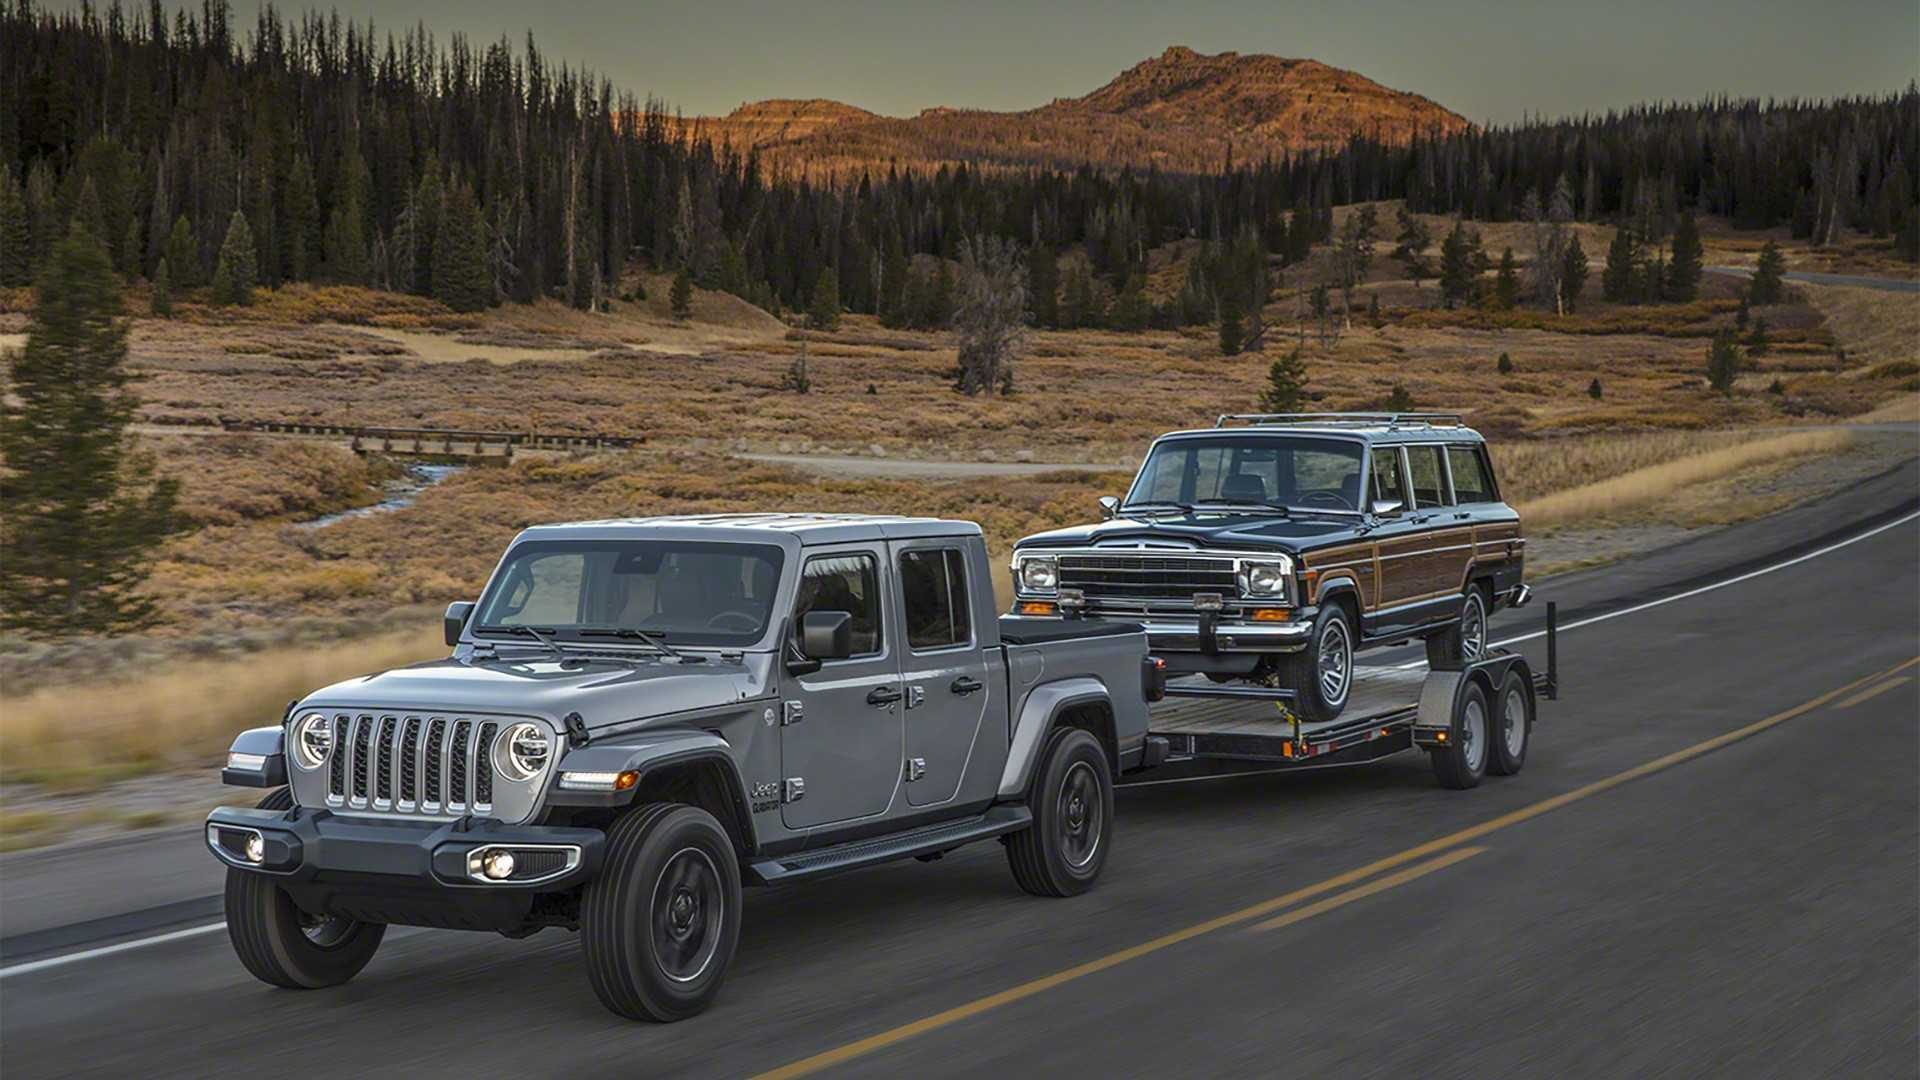 2020-jeep-gladiator-goes-official-with-best-in-class-towing-capacity_50